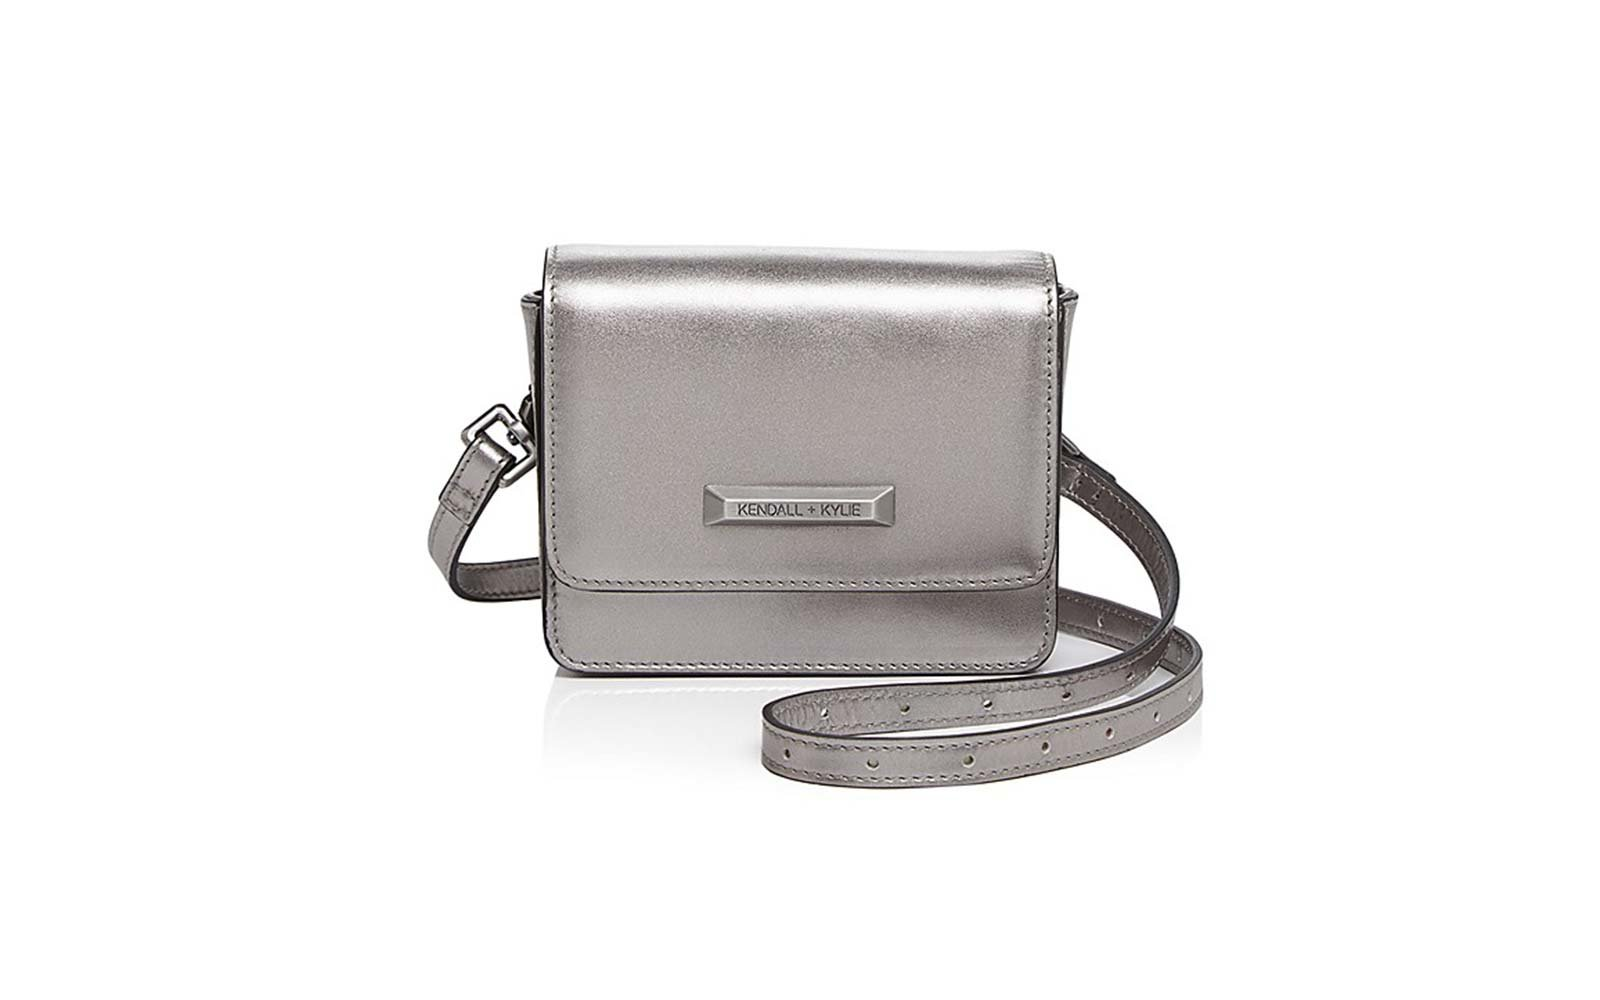 Kendall + Kylie fanny pack